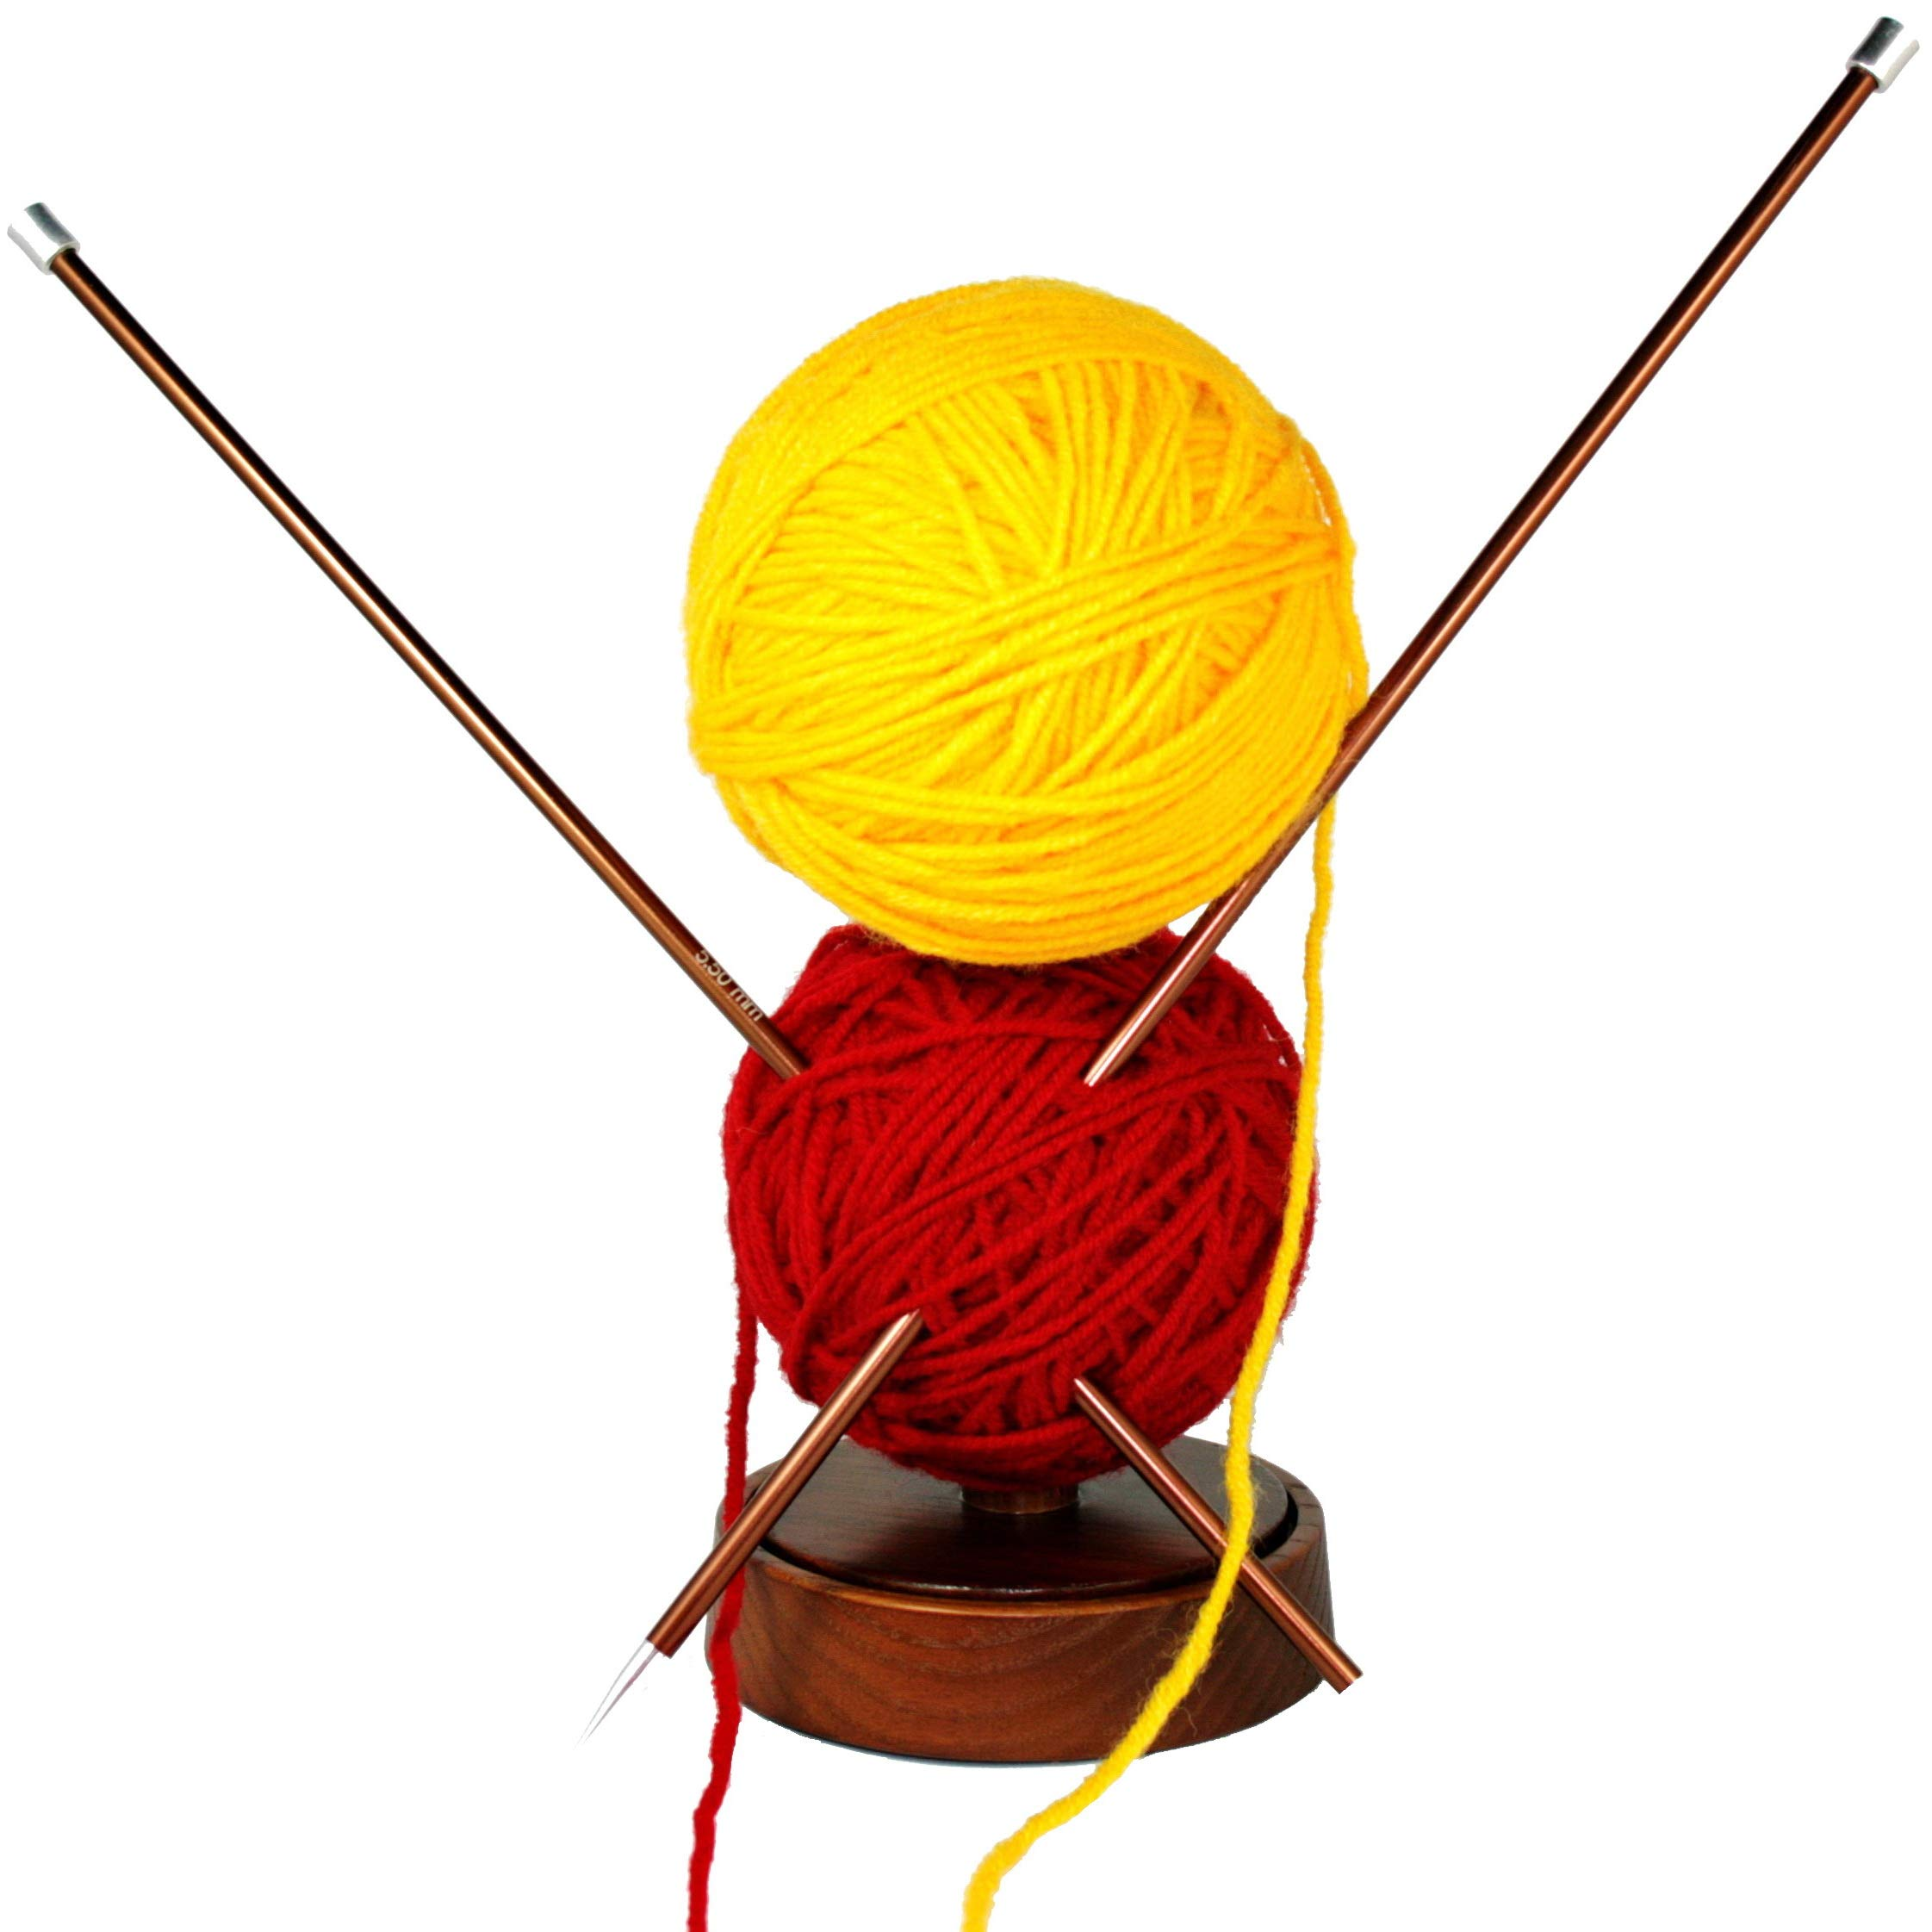 Large Wooden Spinning Yarn Ball Holder. Wool Skein Thread Dispenser. Bobbin Cone Spool Storage Spindle Stand. Wood Knitting Accessories Tools. Adult Beginner Crochet Project Kit by BarvA (Image #4)